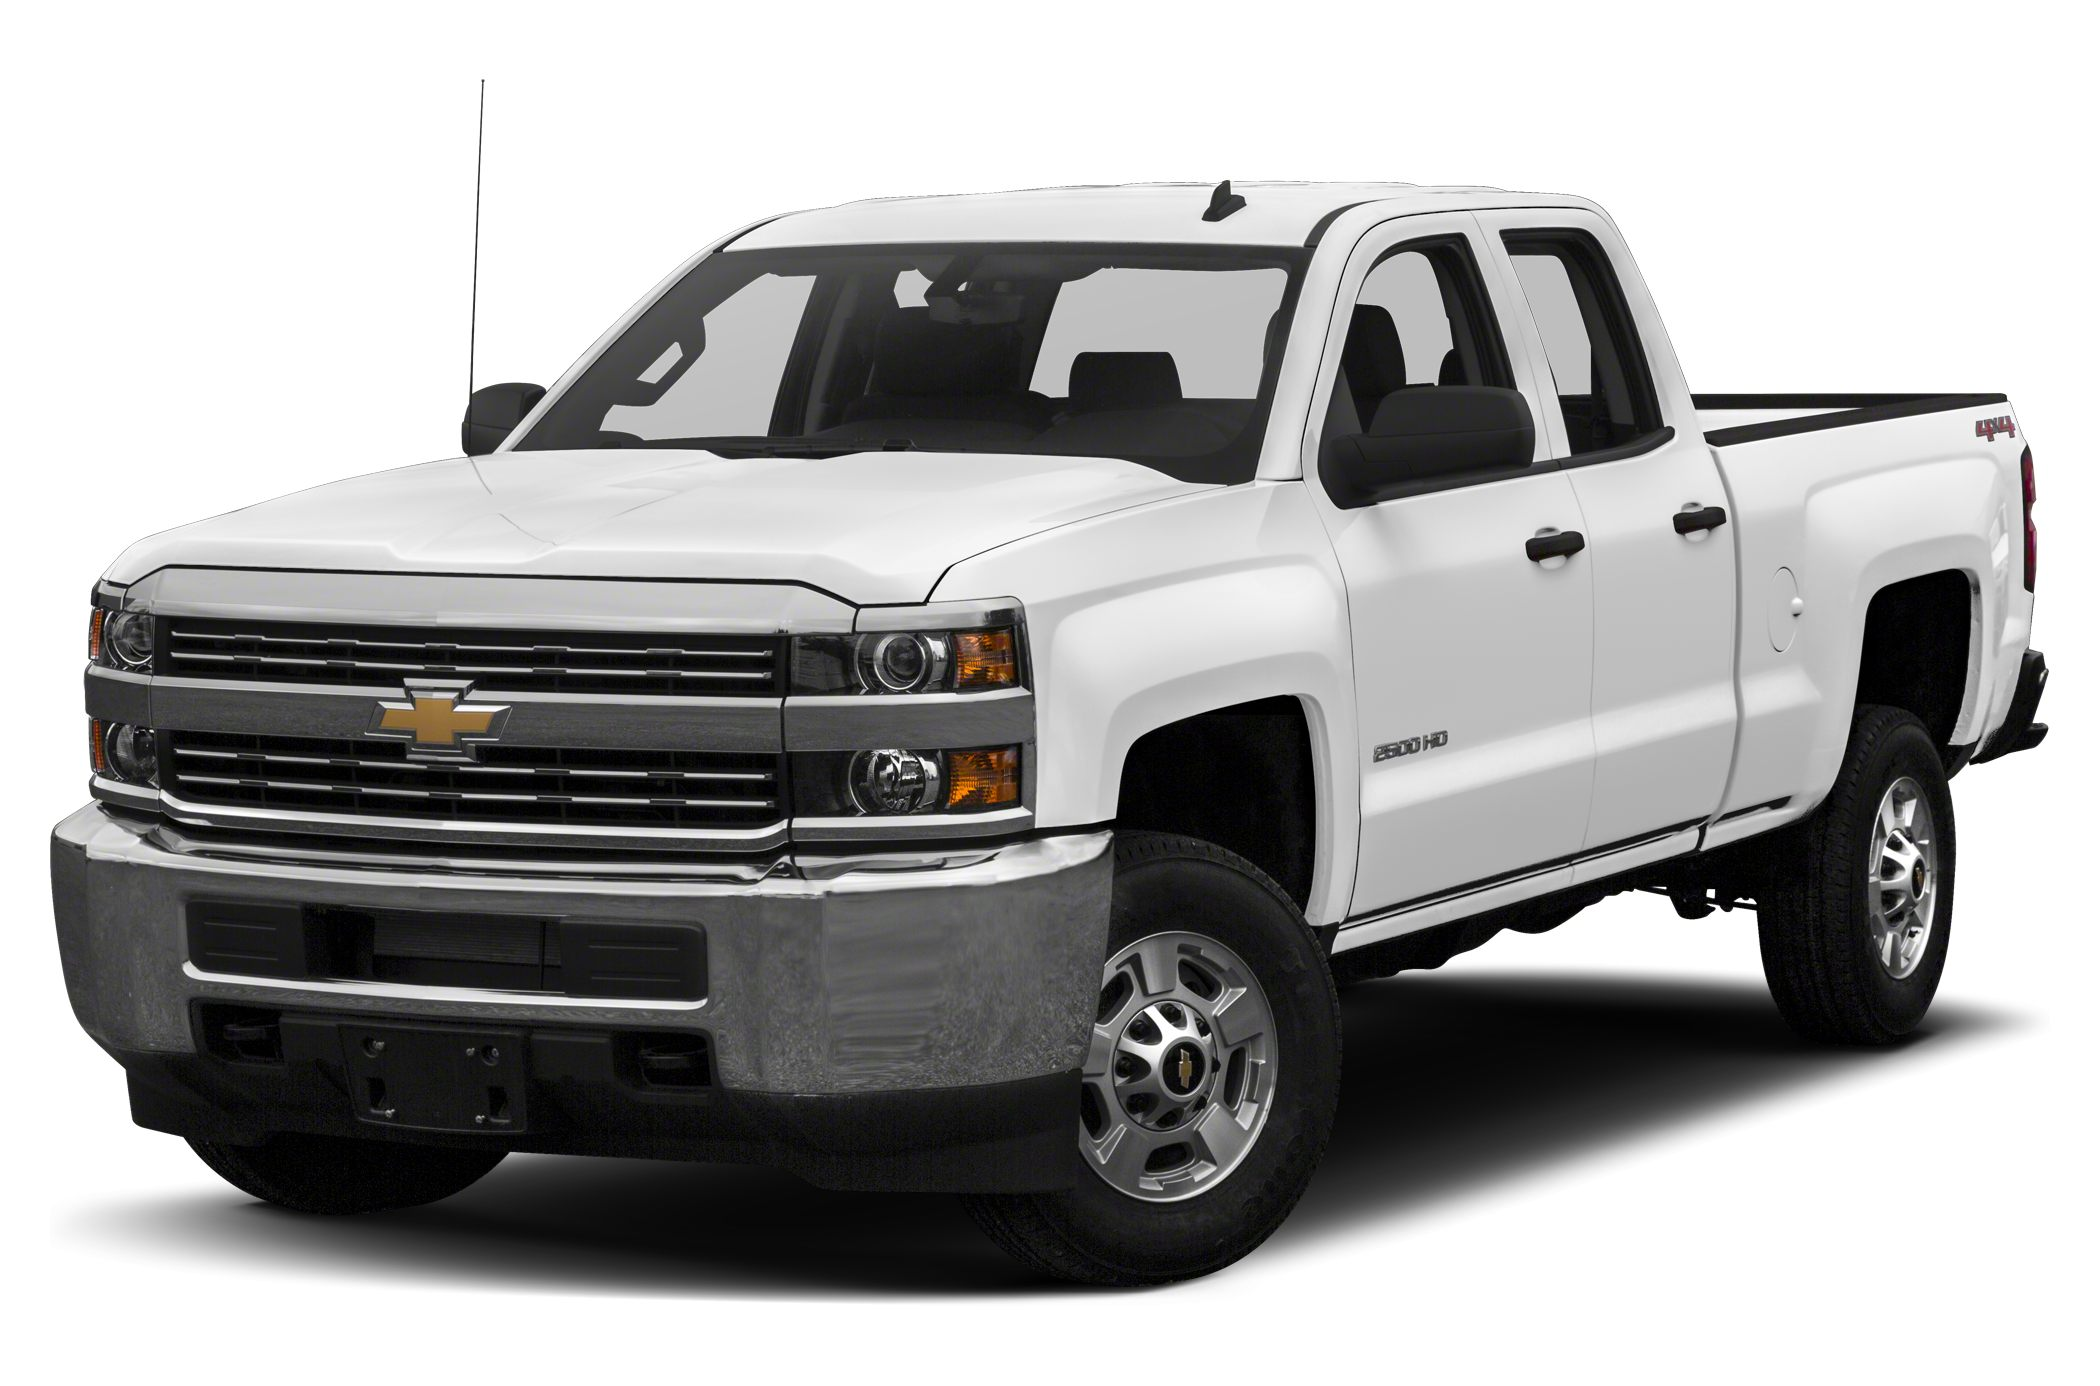 2015 Chevrolet Silverado 2500 WT Crew Cab Pickup for sale in Westminster for $43,805 with 8 miles